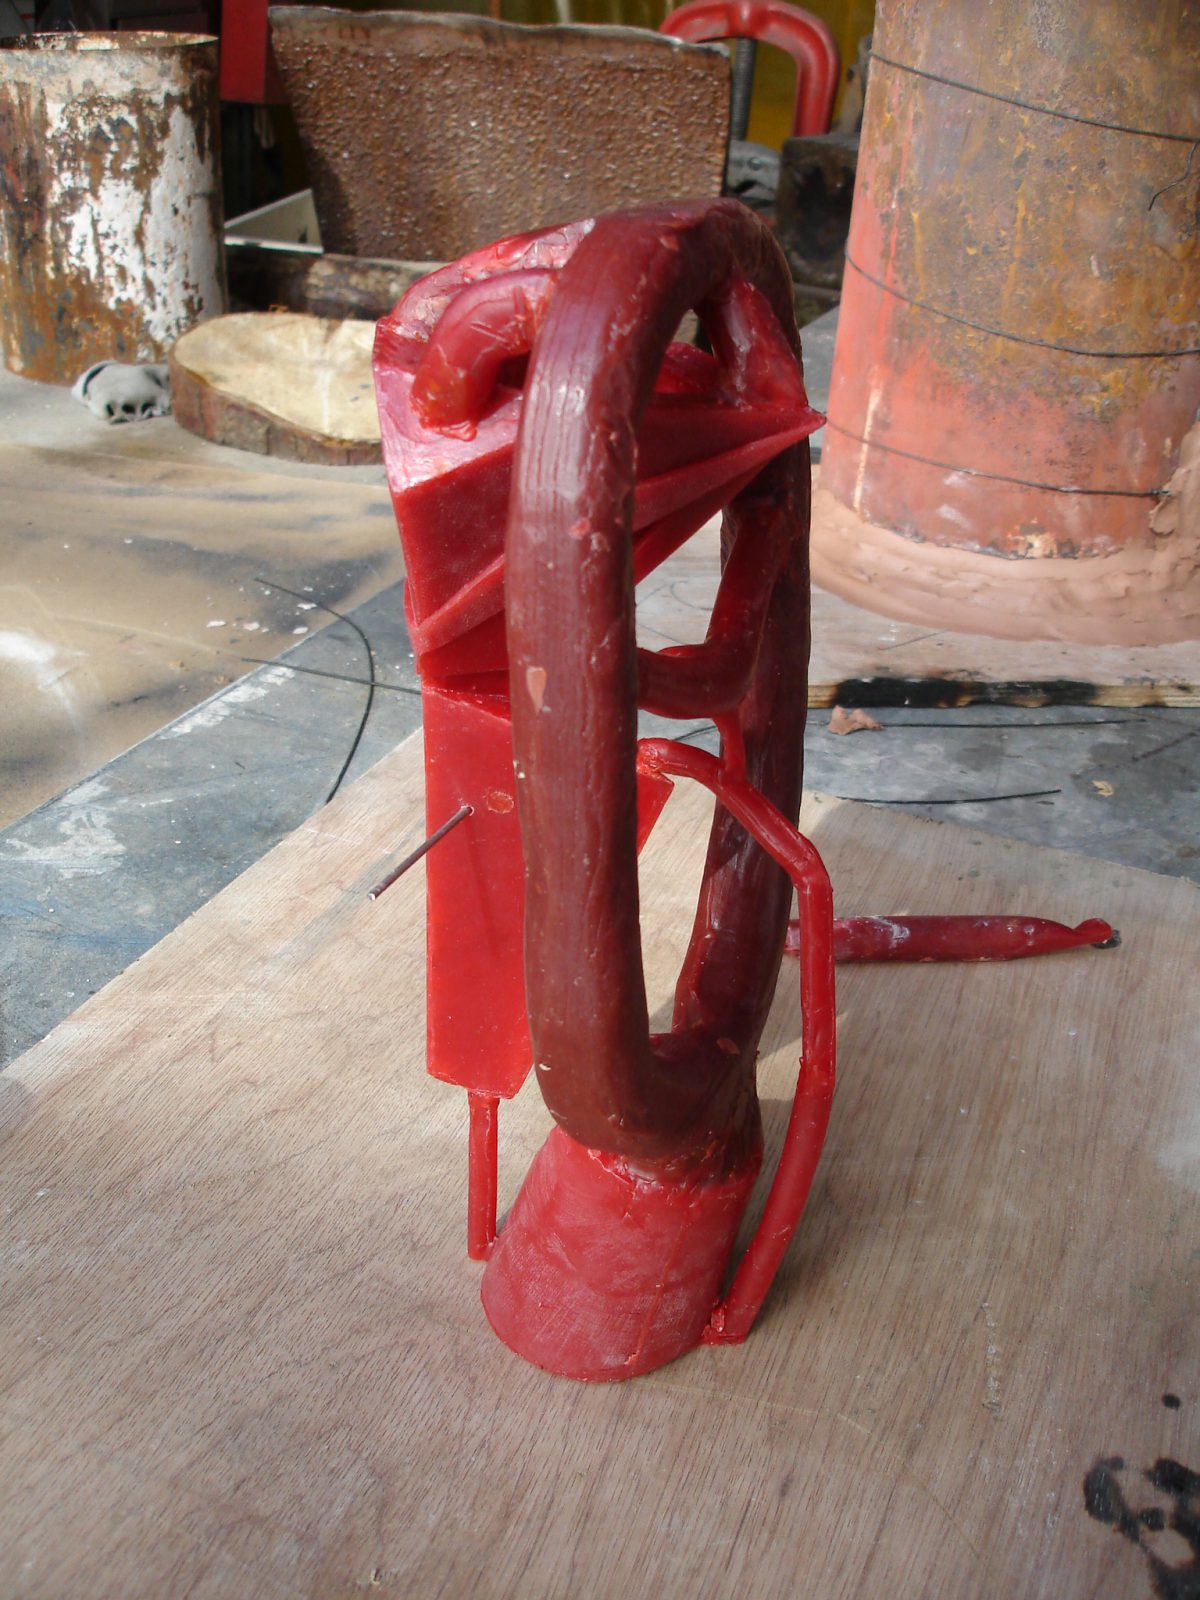 Divider - wip - Add a pin to hold the core, ch3, sculpture, process, wax